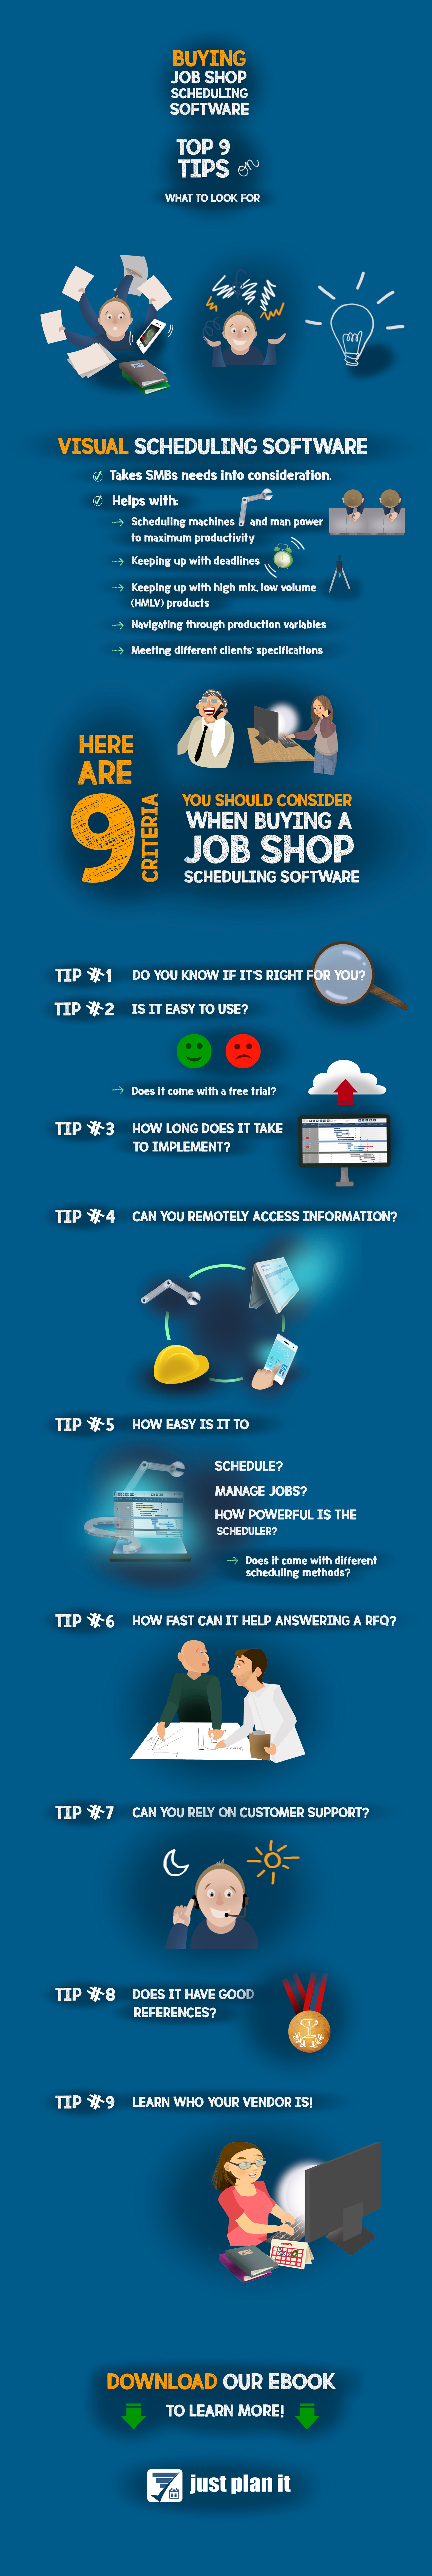 eBook infographic corrected